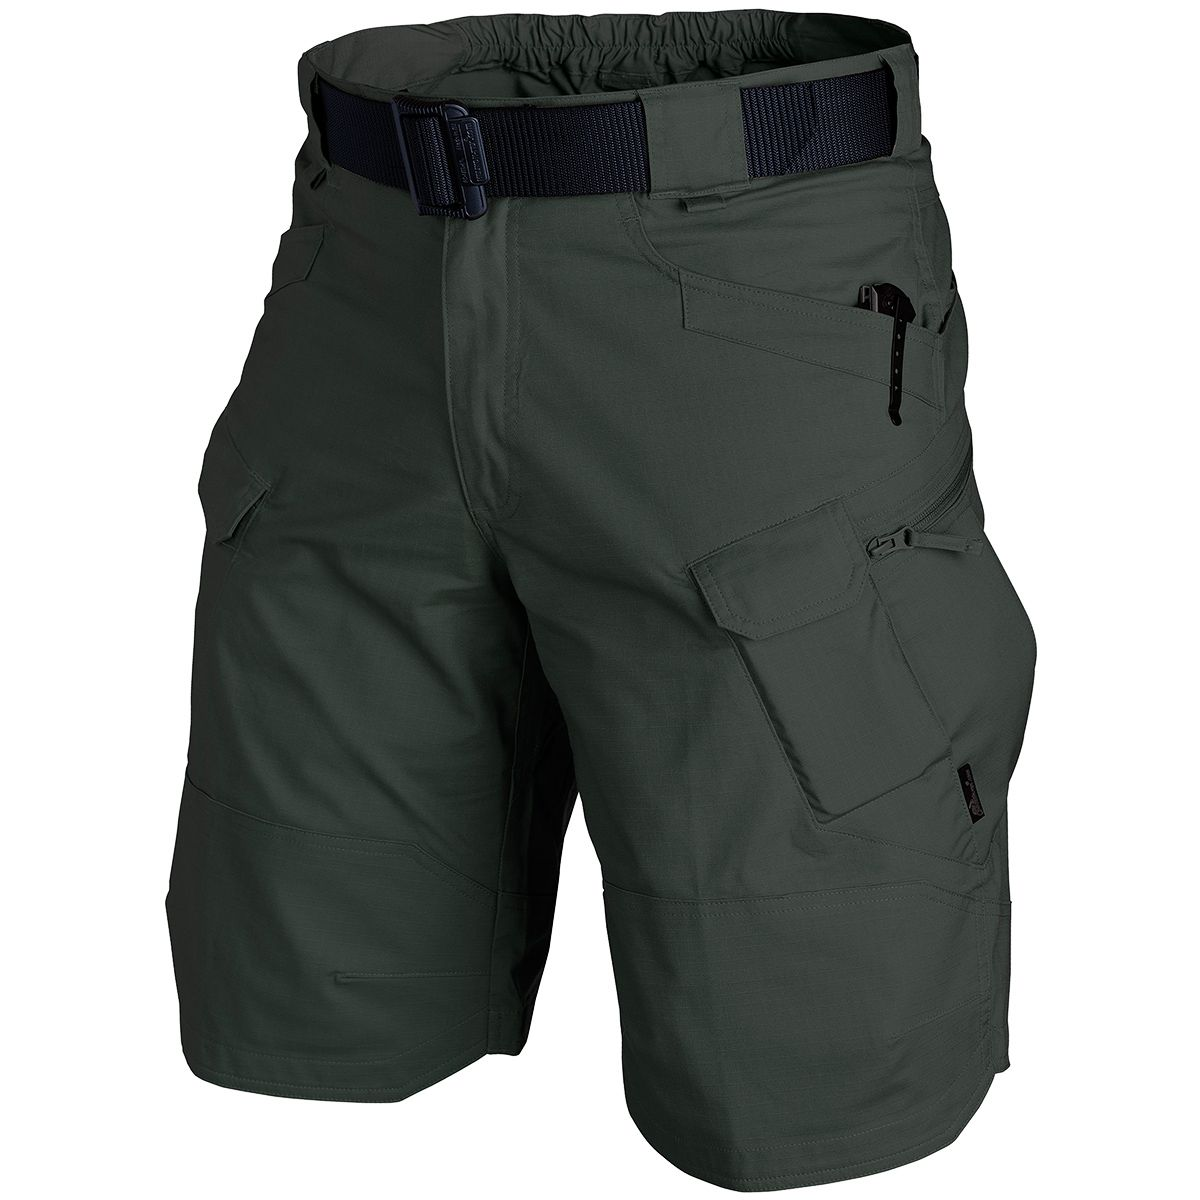 Details about Helikon UTL Tactical Urban Shorts Mens Ripstop Hunting Cargo Pants Jungle Green #outfitswithshorts